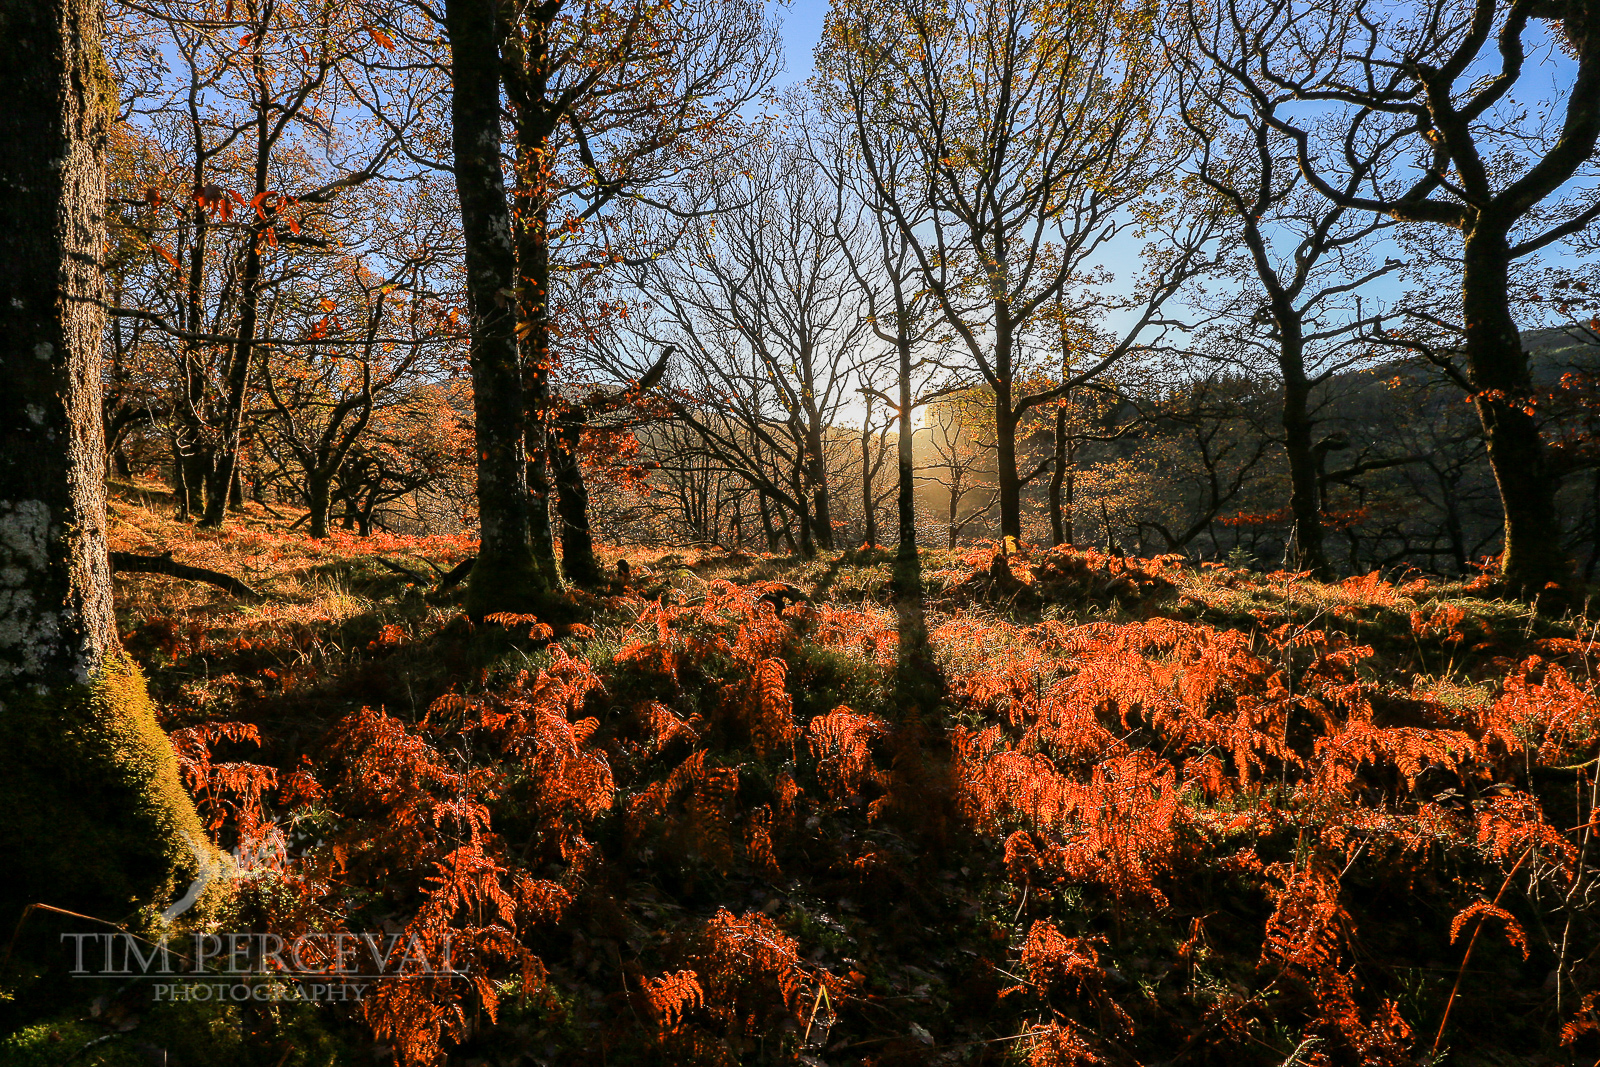 Autumn Ferns at Sunrise, Strone Hill Falls